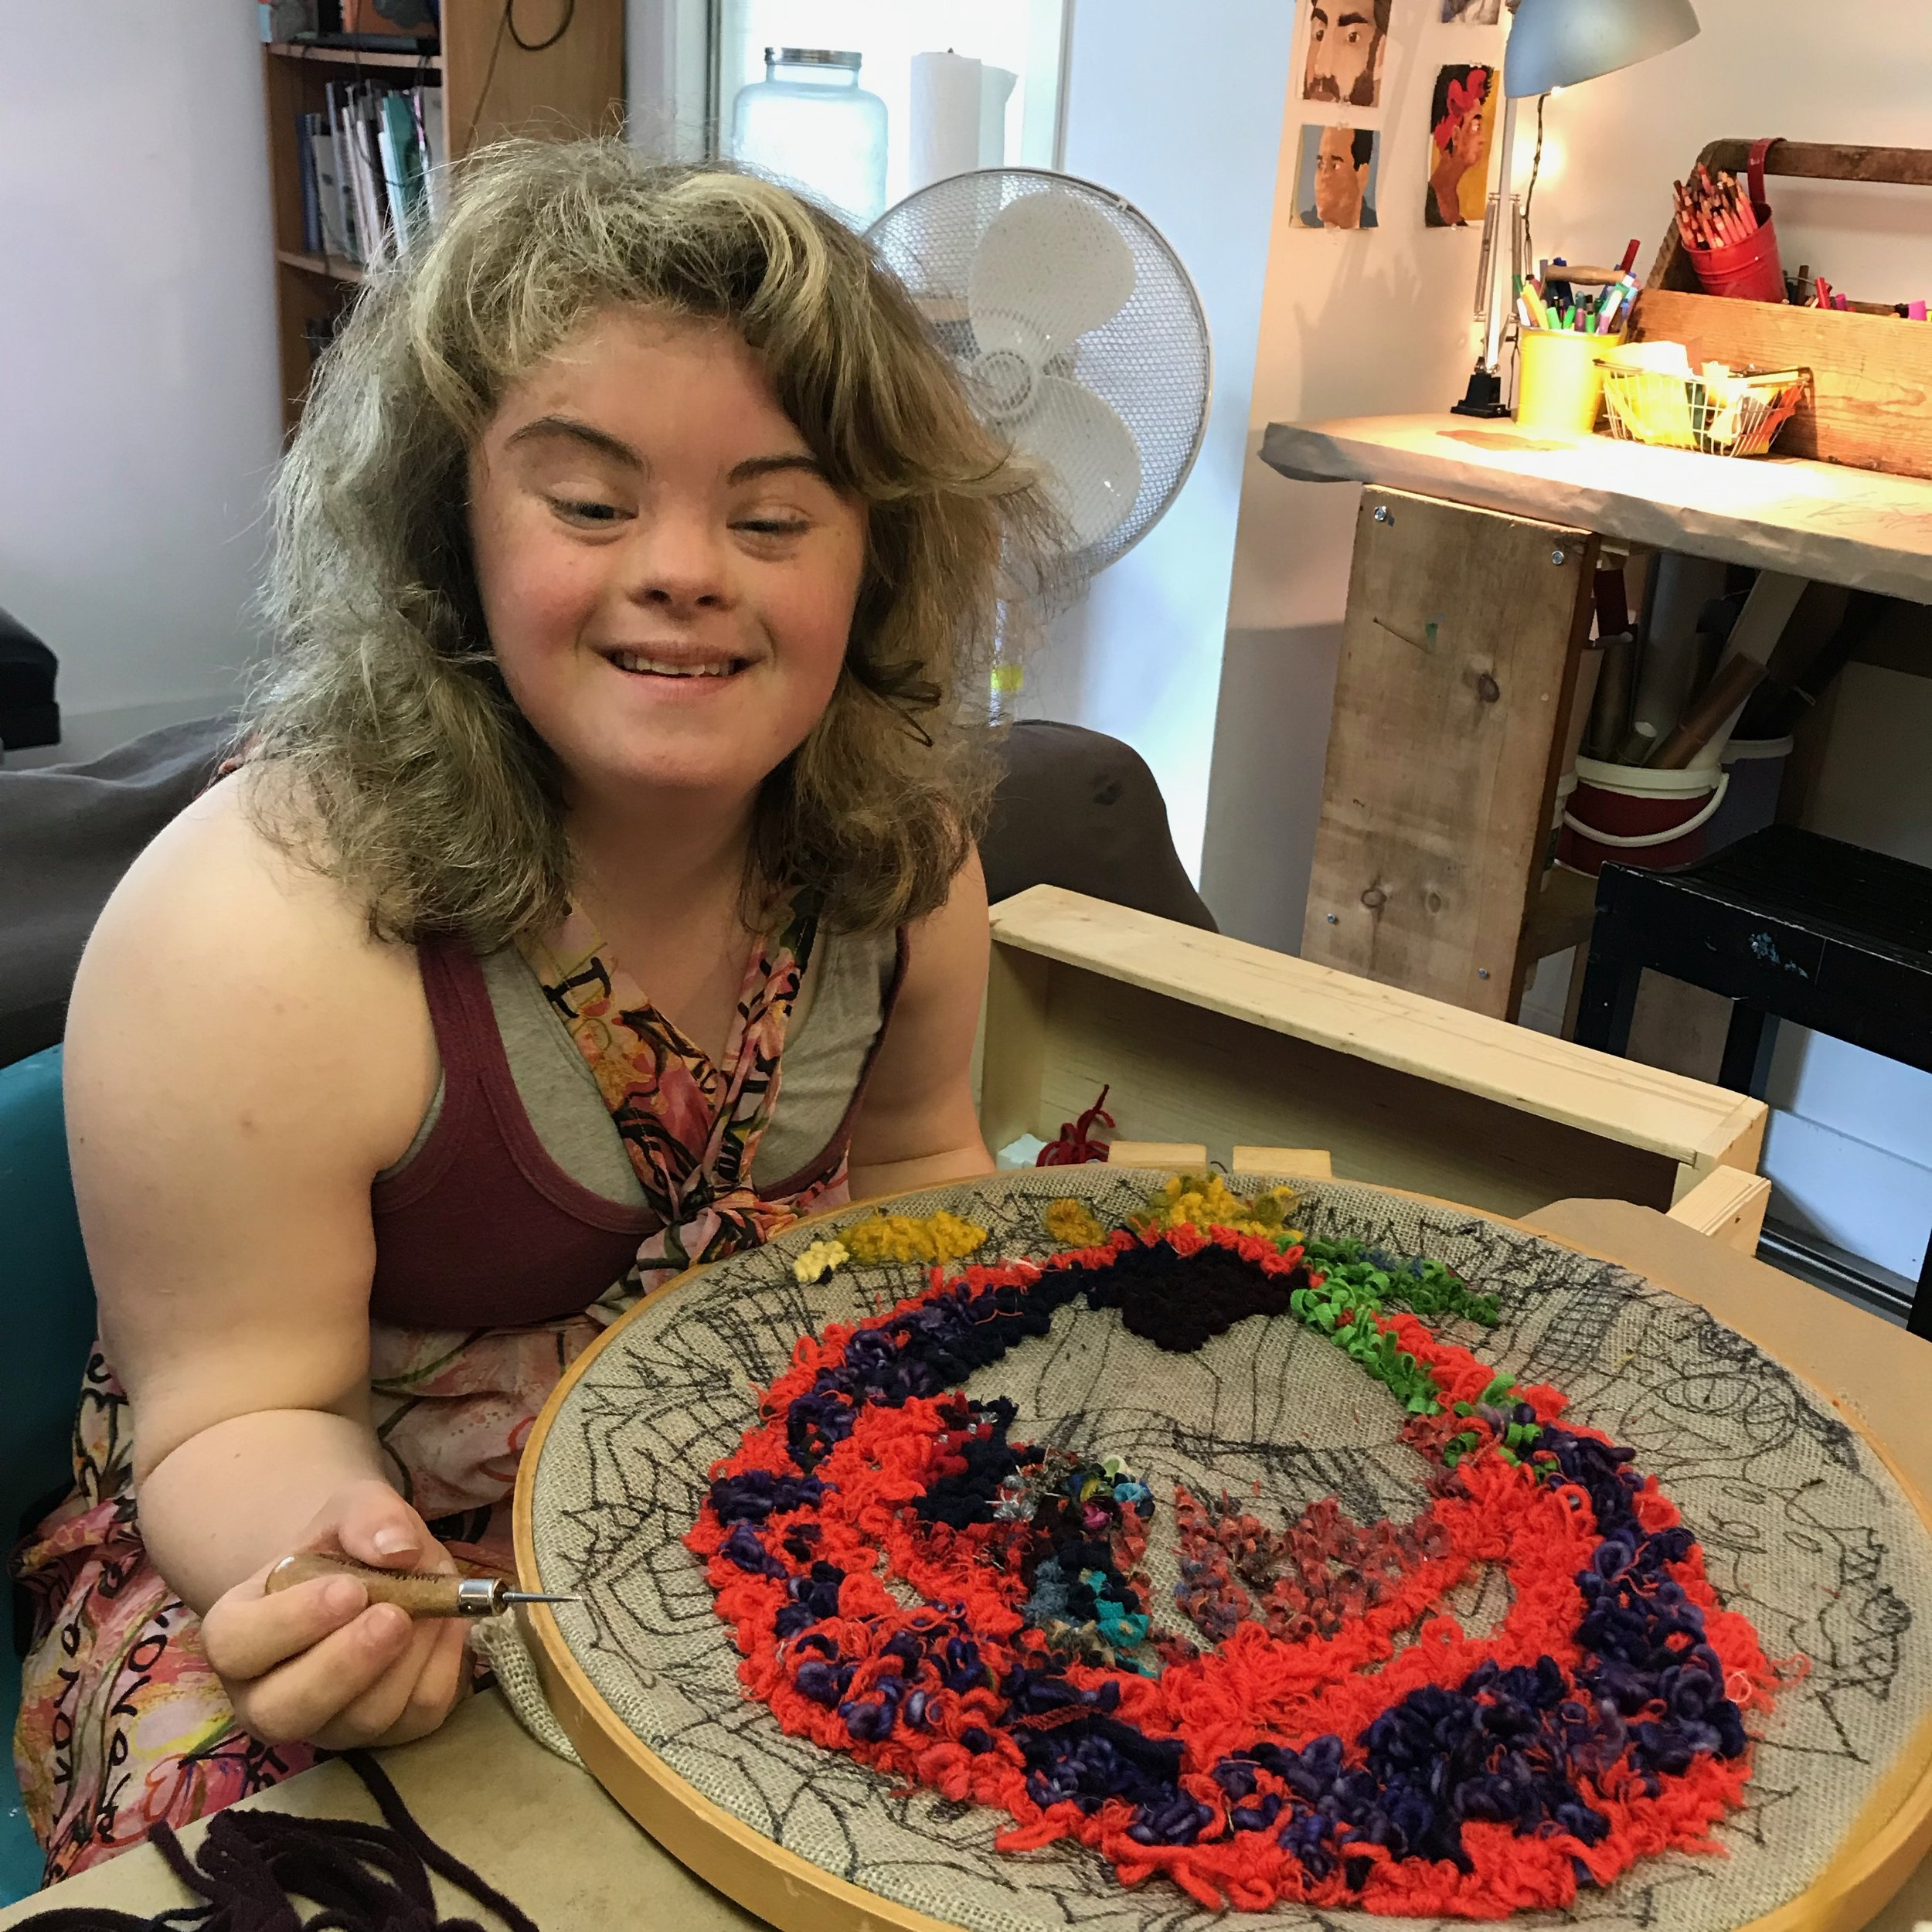 Wonder'neath's Studio Artist Program is the heart of the studio. Practicing artists develop their work in a variety of mediums and share with the public through informal and scheduled events. Marie has recently been rug hooking and was eager to explore her new passion during an Open studio session!